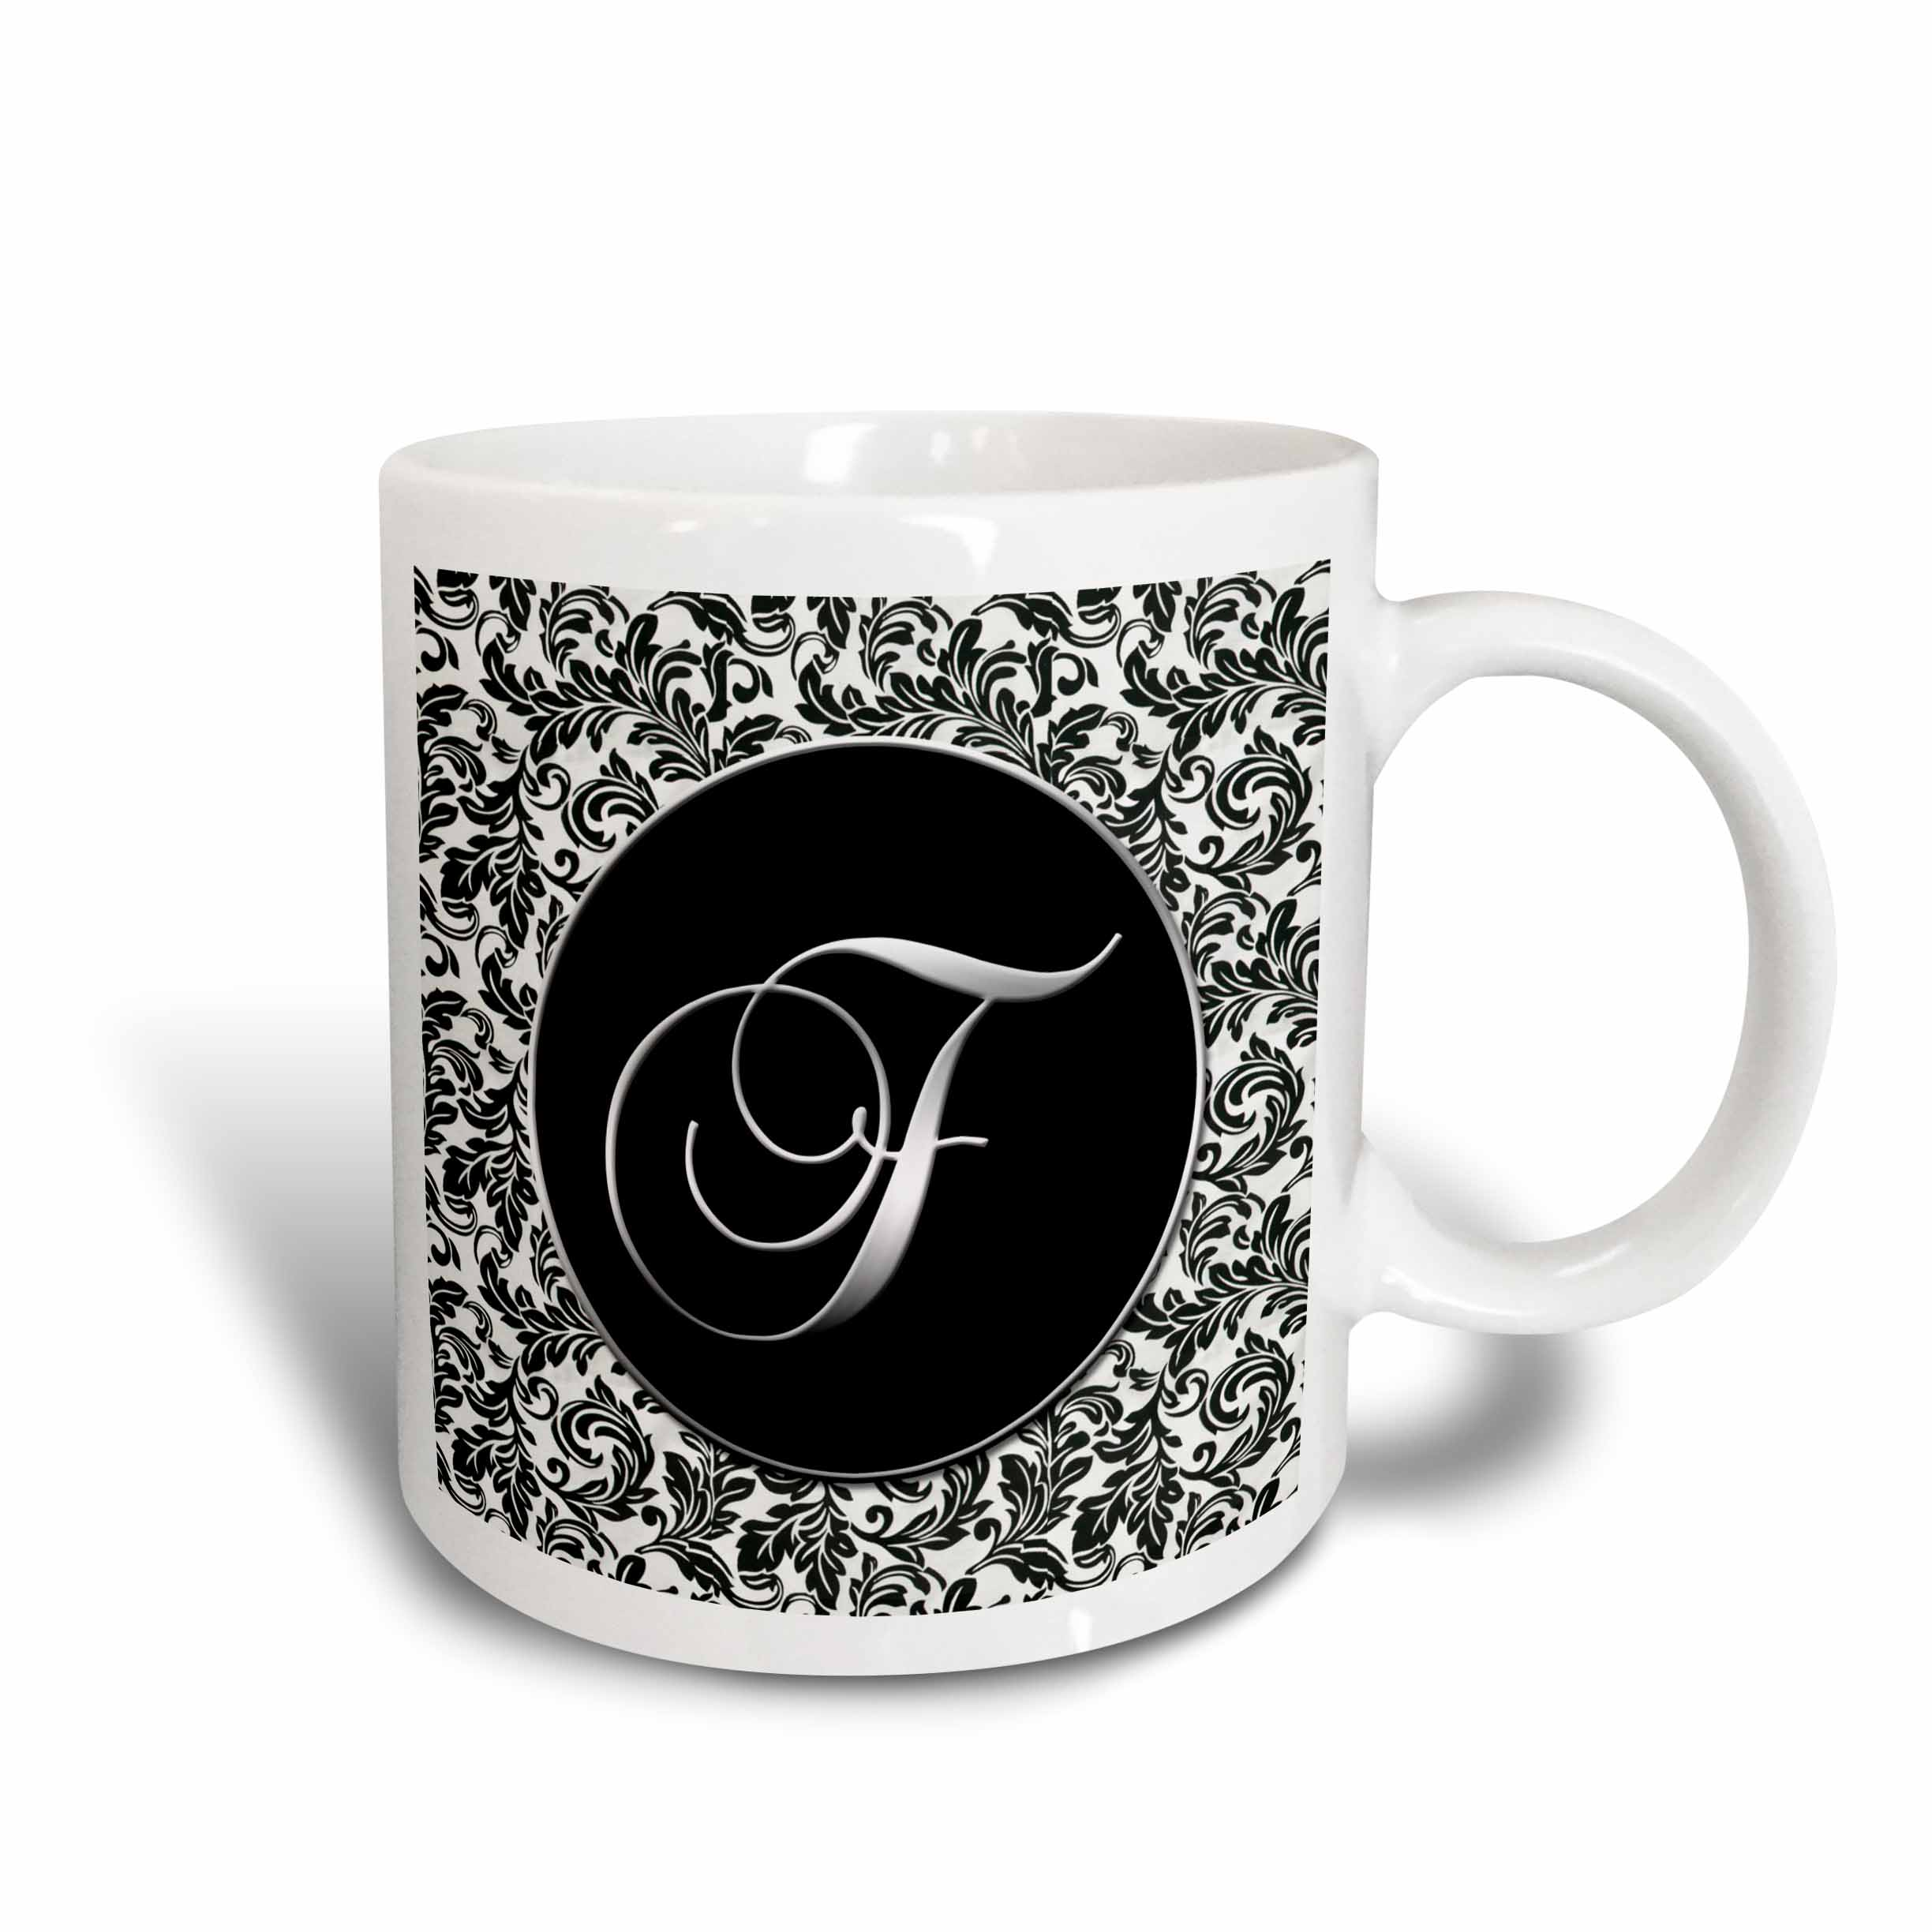 3dRose Letter F - Black and White Damask, Ceramic Mug, 15-ounce